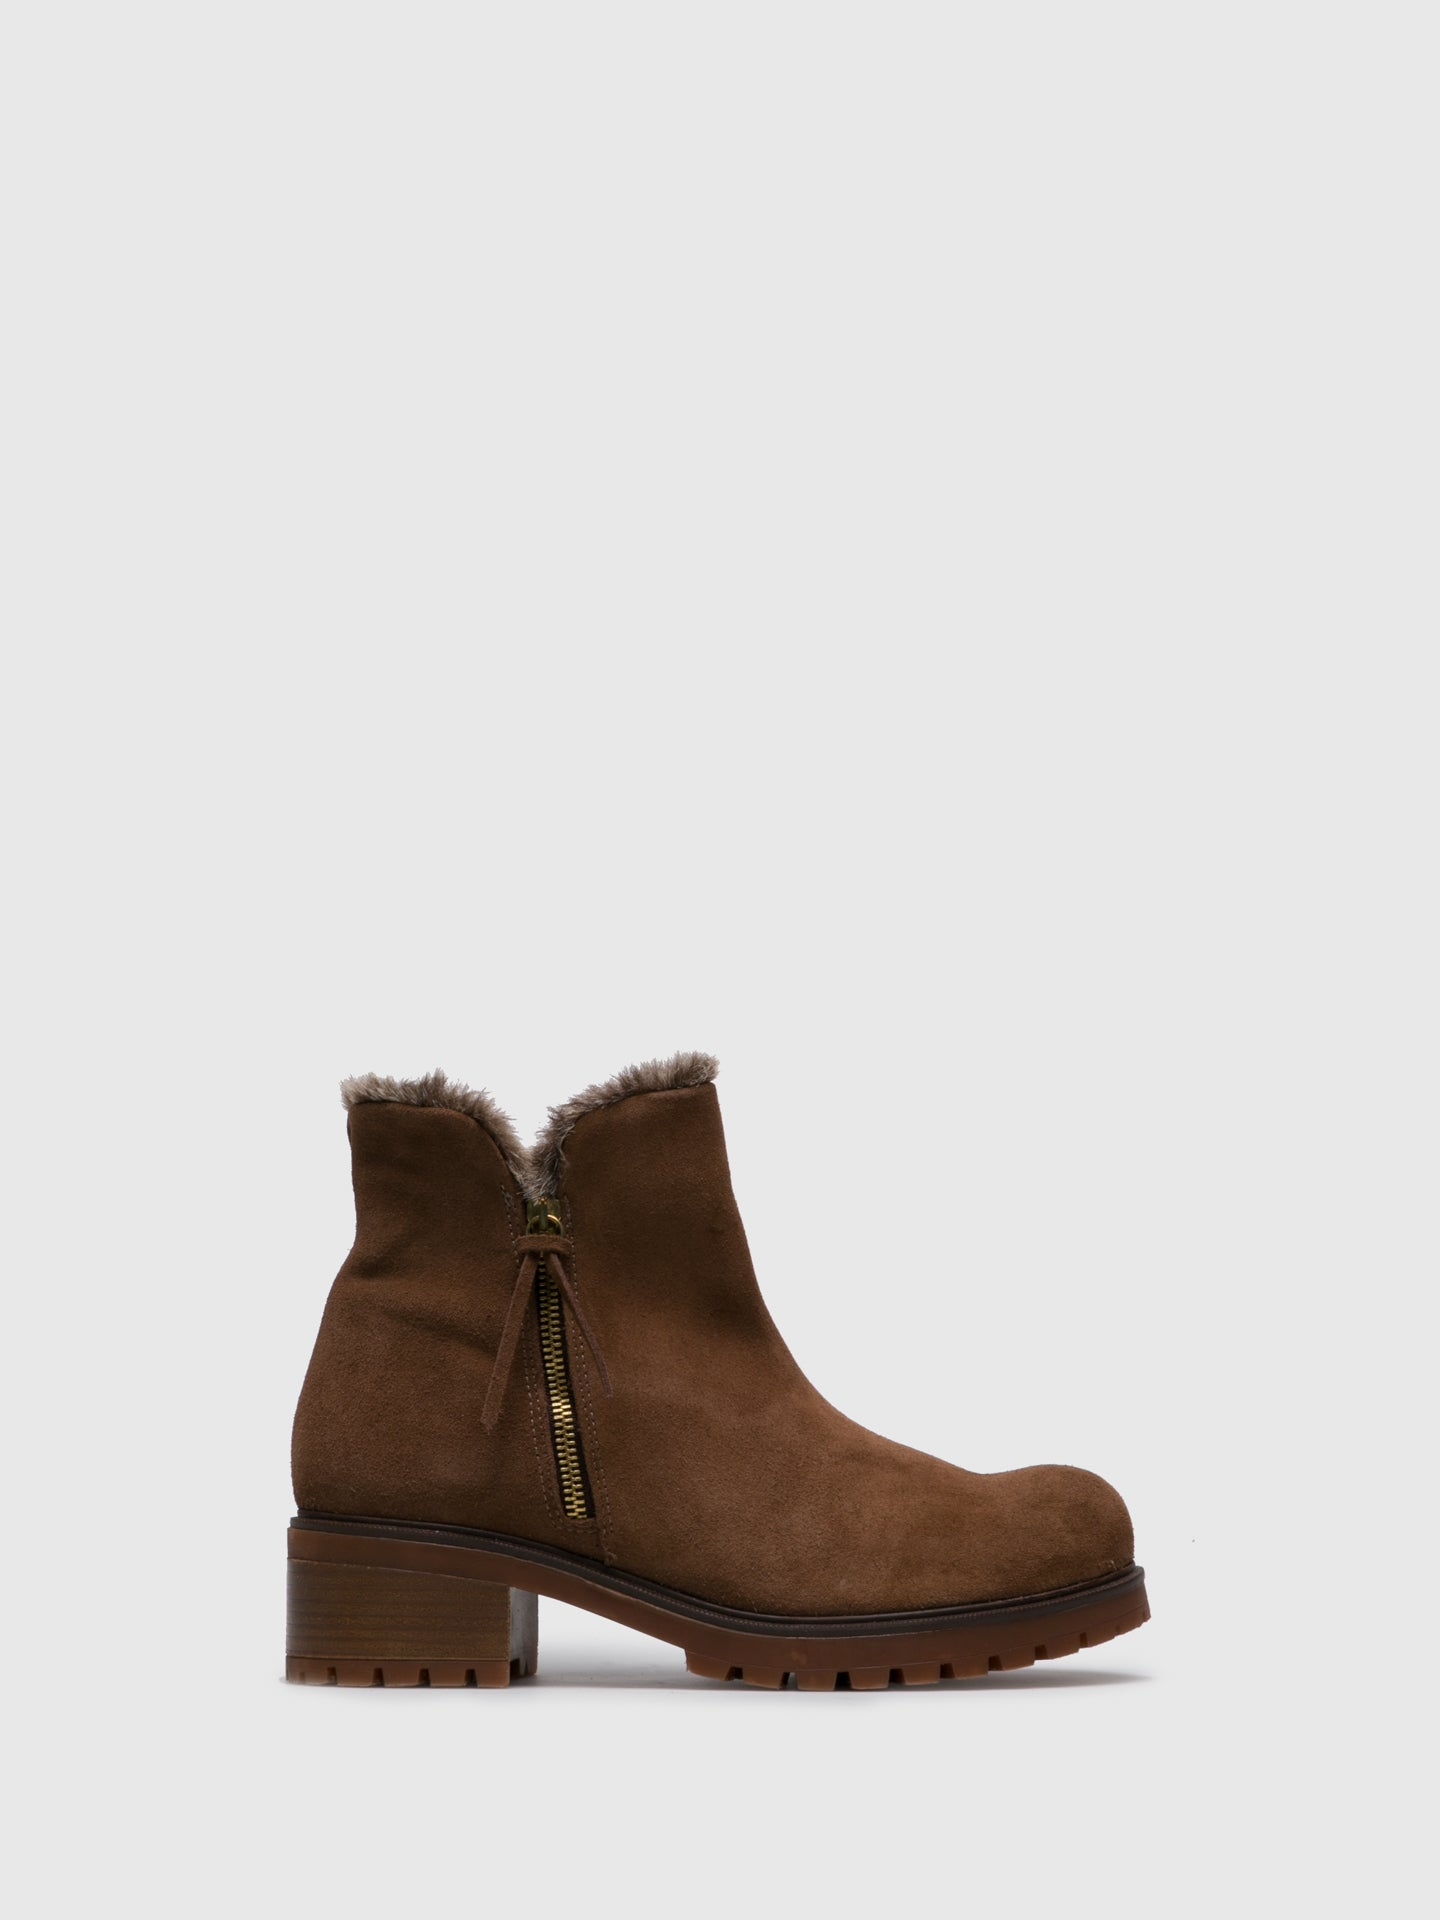 Sotoalto Peru Zip Up Ankle Boots